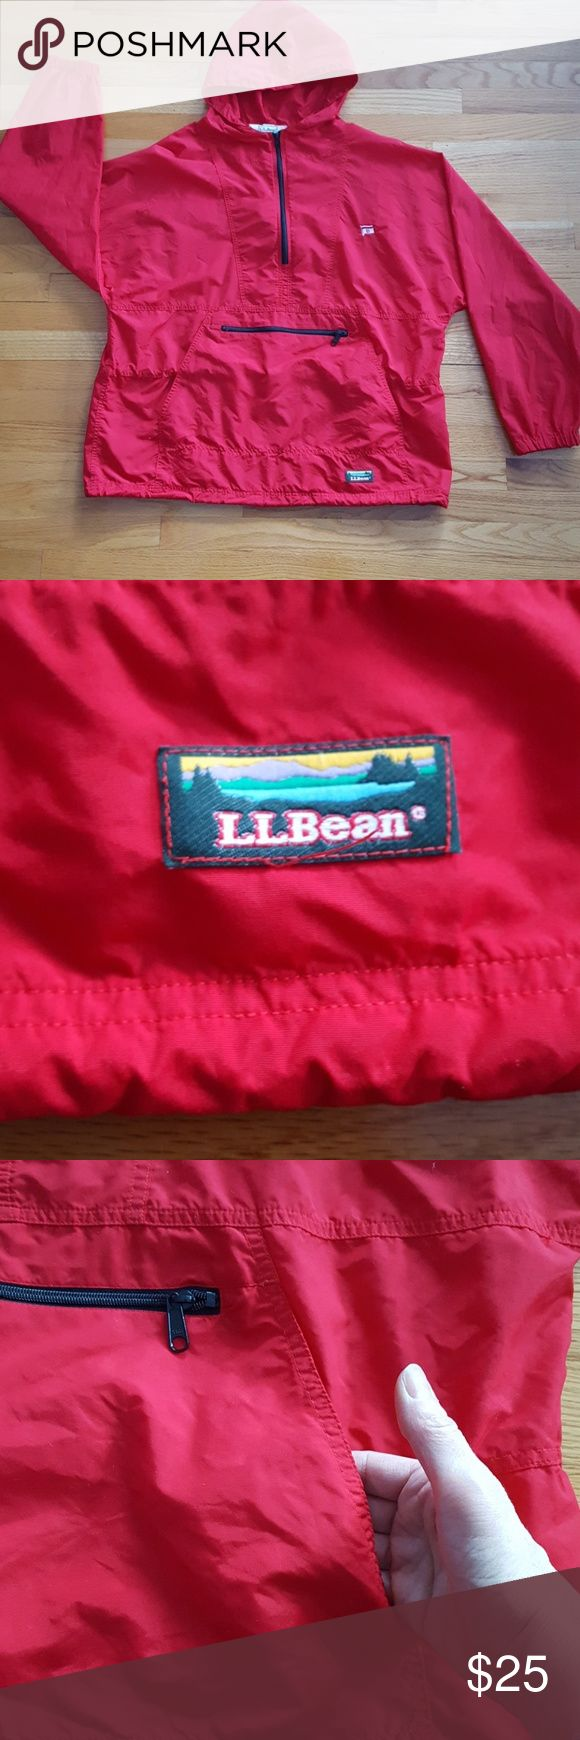 L.L.Bean nylon half zip windbreaker with hood. L.L.Bean nylon half-zip windbreaker with hood and drawstring Hood drawstring at the waist and drawstring at the bottom for maximum control. Has zipper pouch and full pocket across the front. Clean and no odors. LL Bean Jackets & Coats